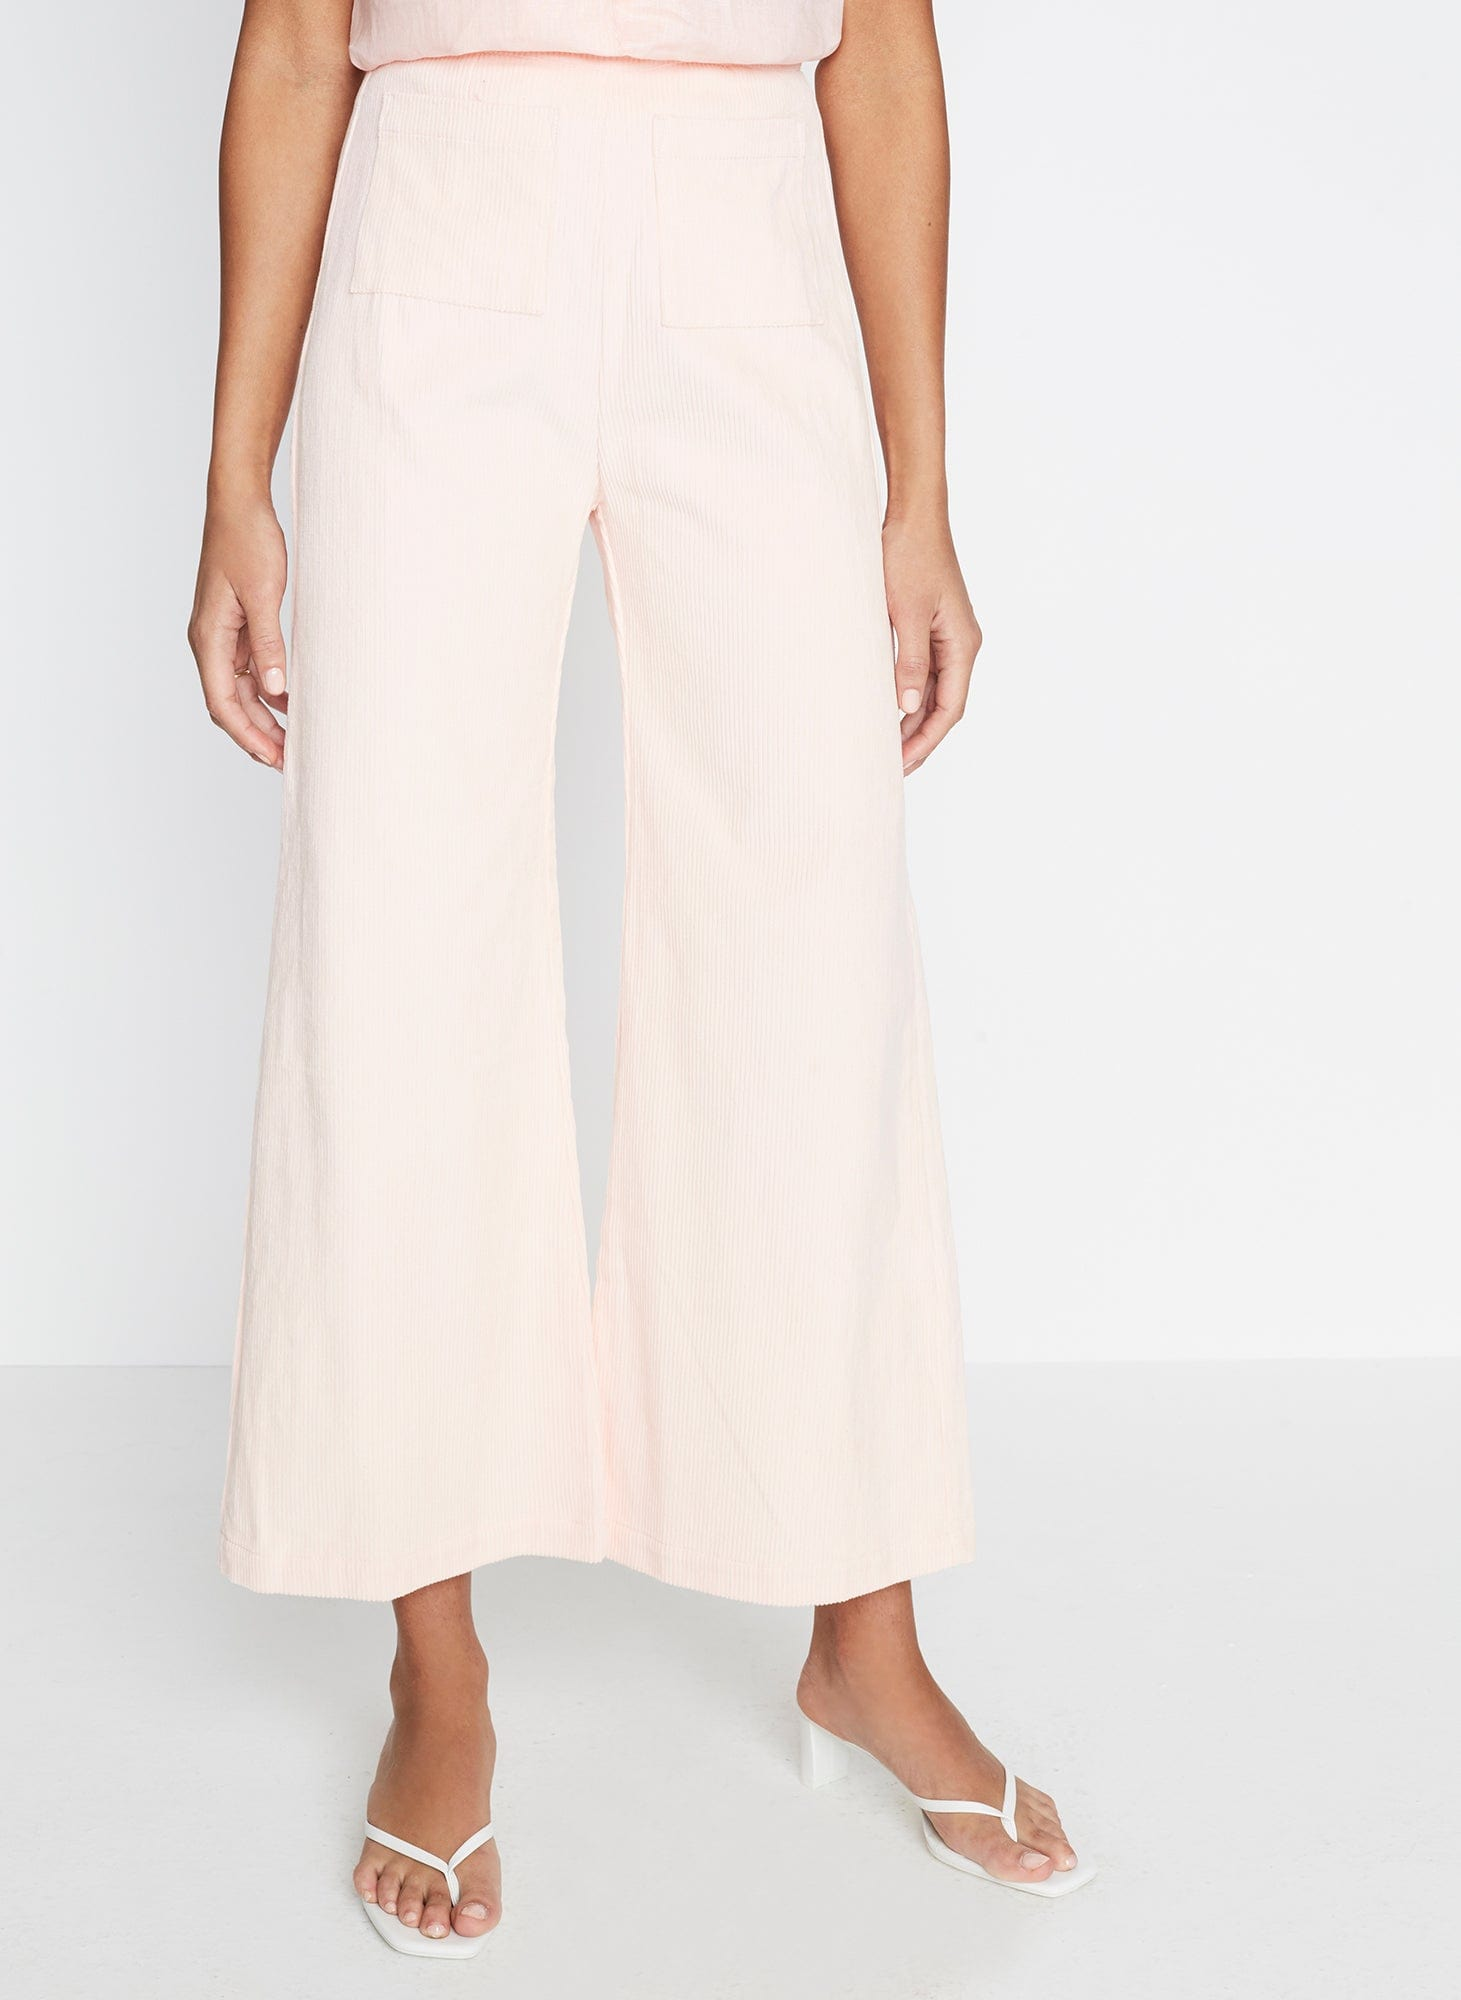 Tove Corduroy Pants Plain Pale Pink -Final Sale